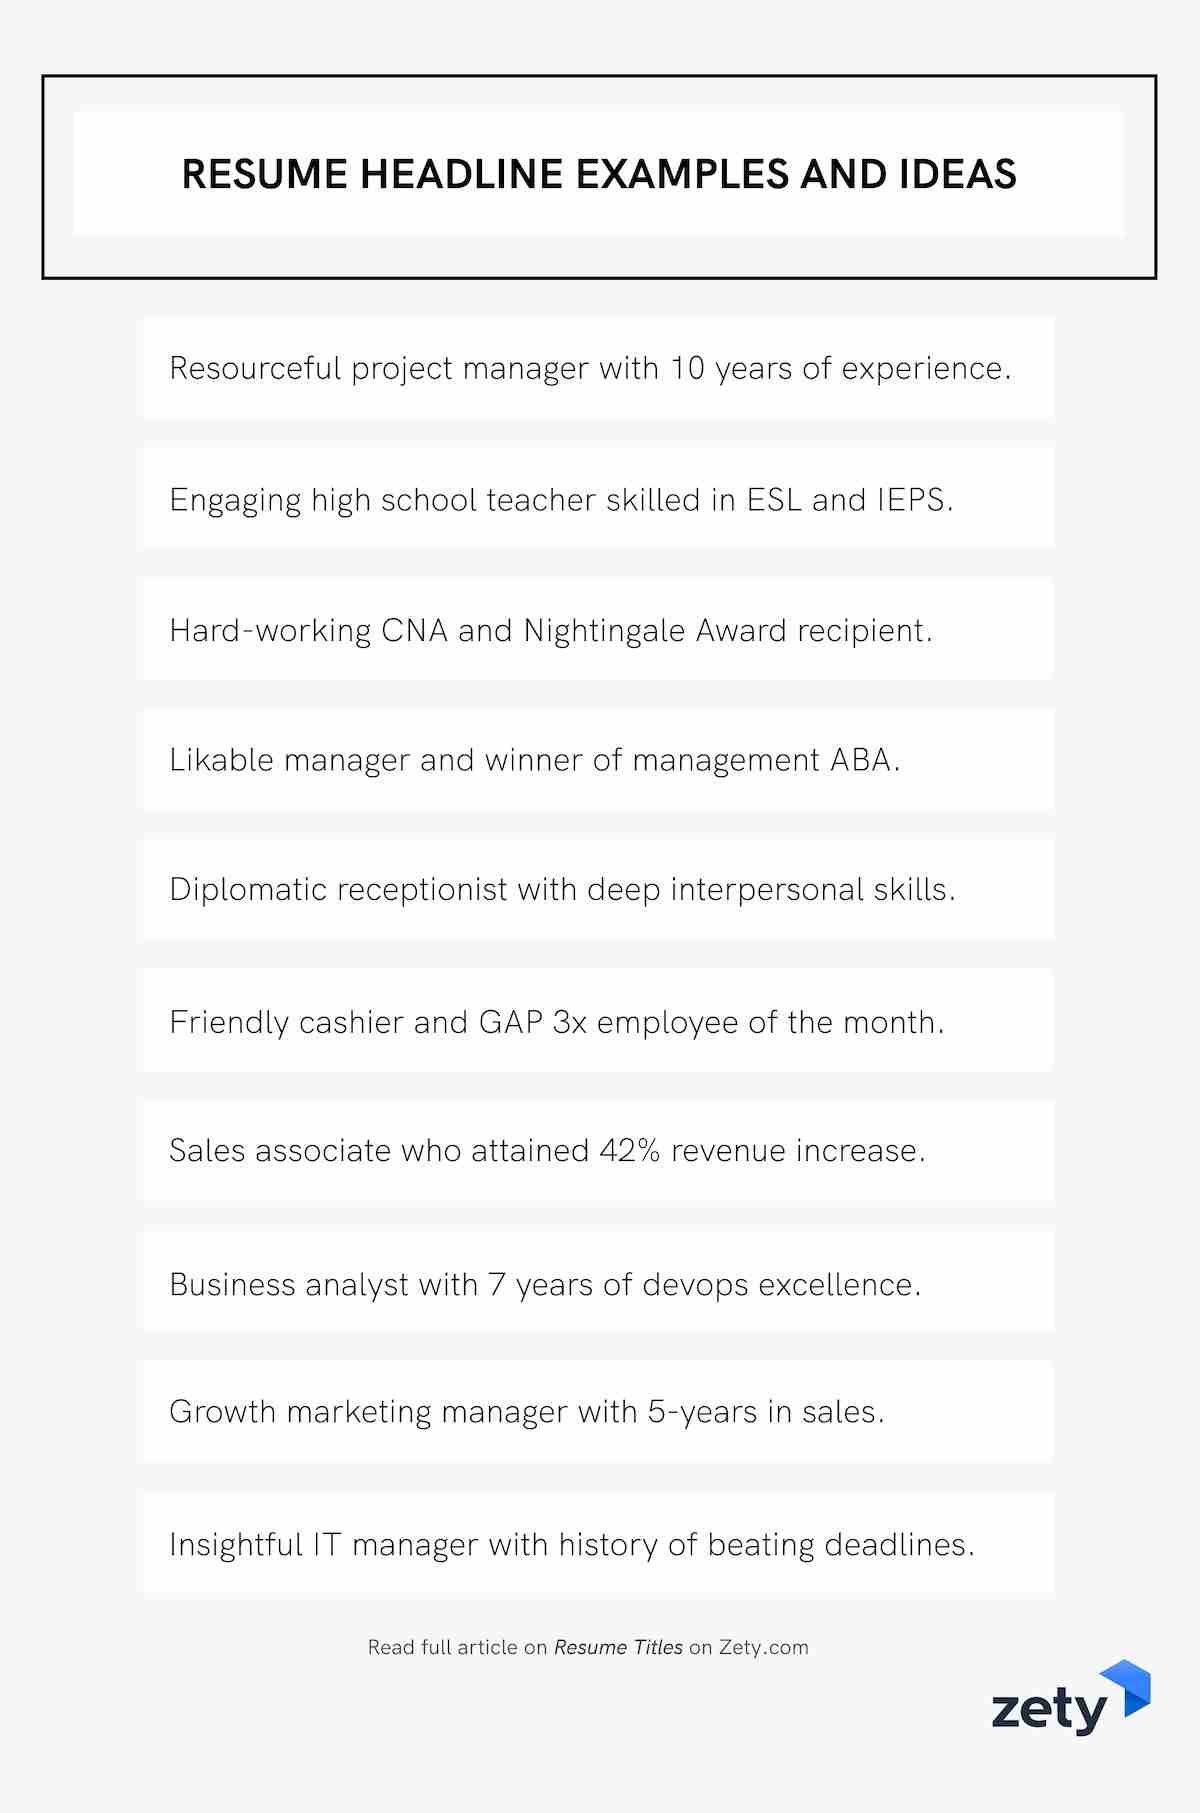 resume title examples good headline for any your profile and ideas bpt format music Resume Headline For Your Resume Profile